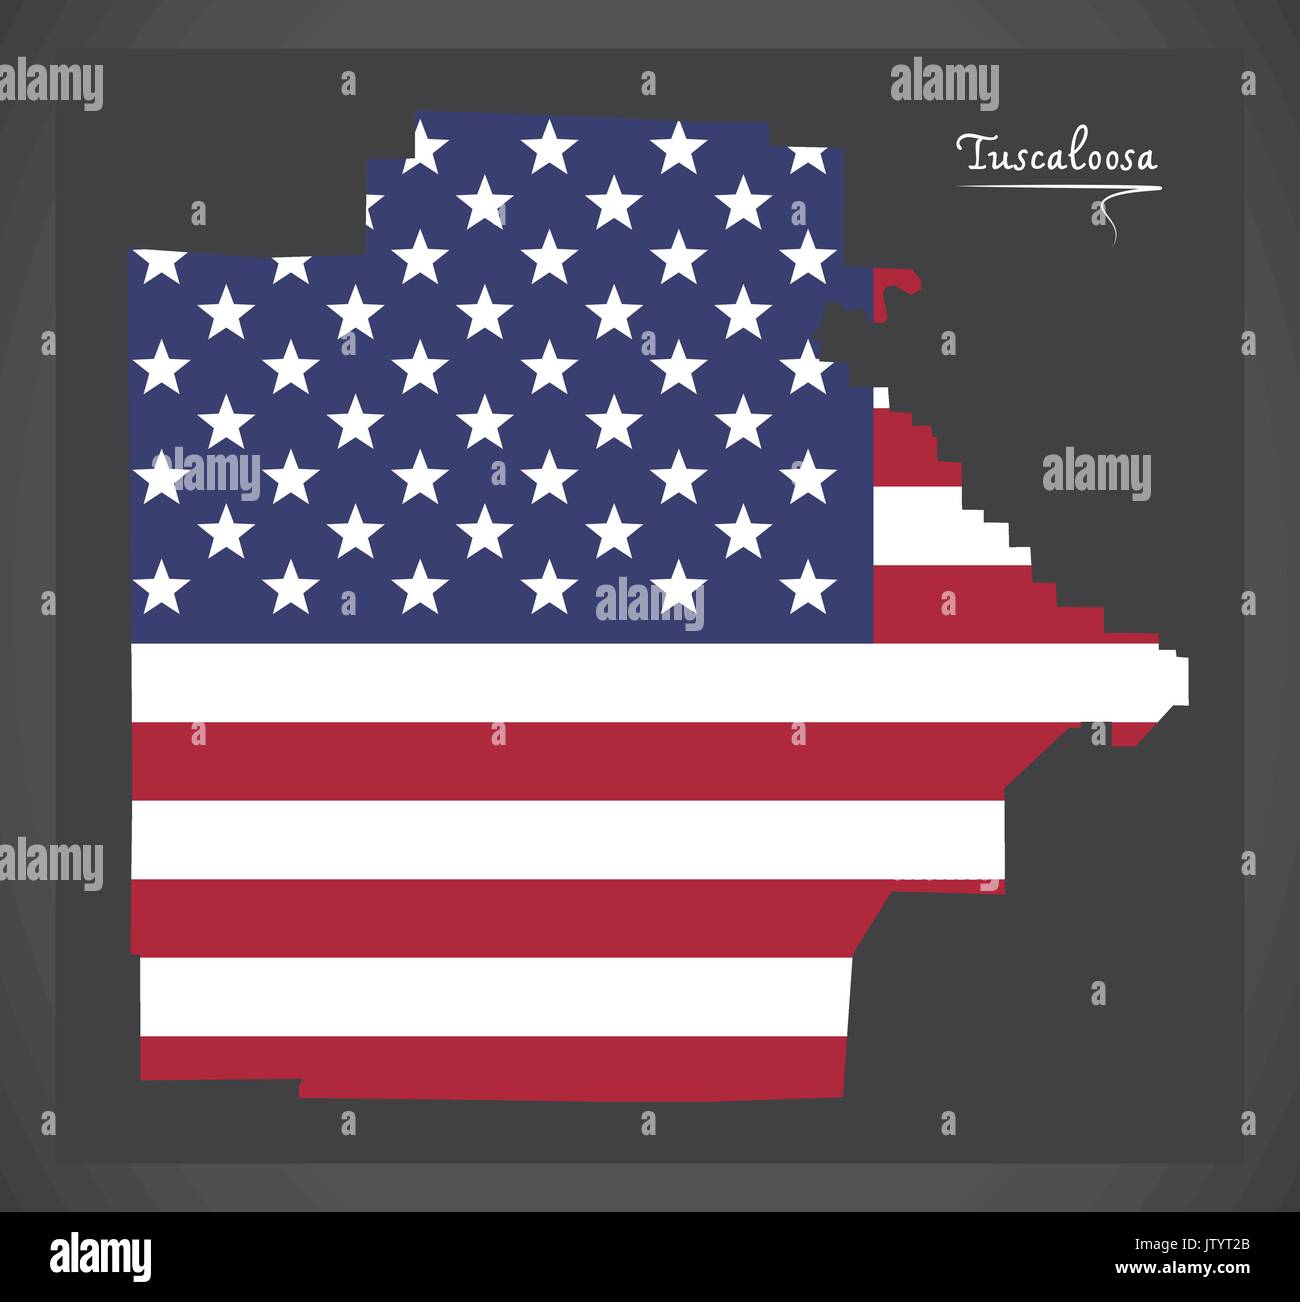 Tuscaloosa county map of Alabama USA with American national flag illustration - Stock Image